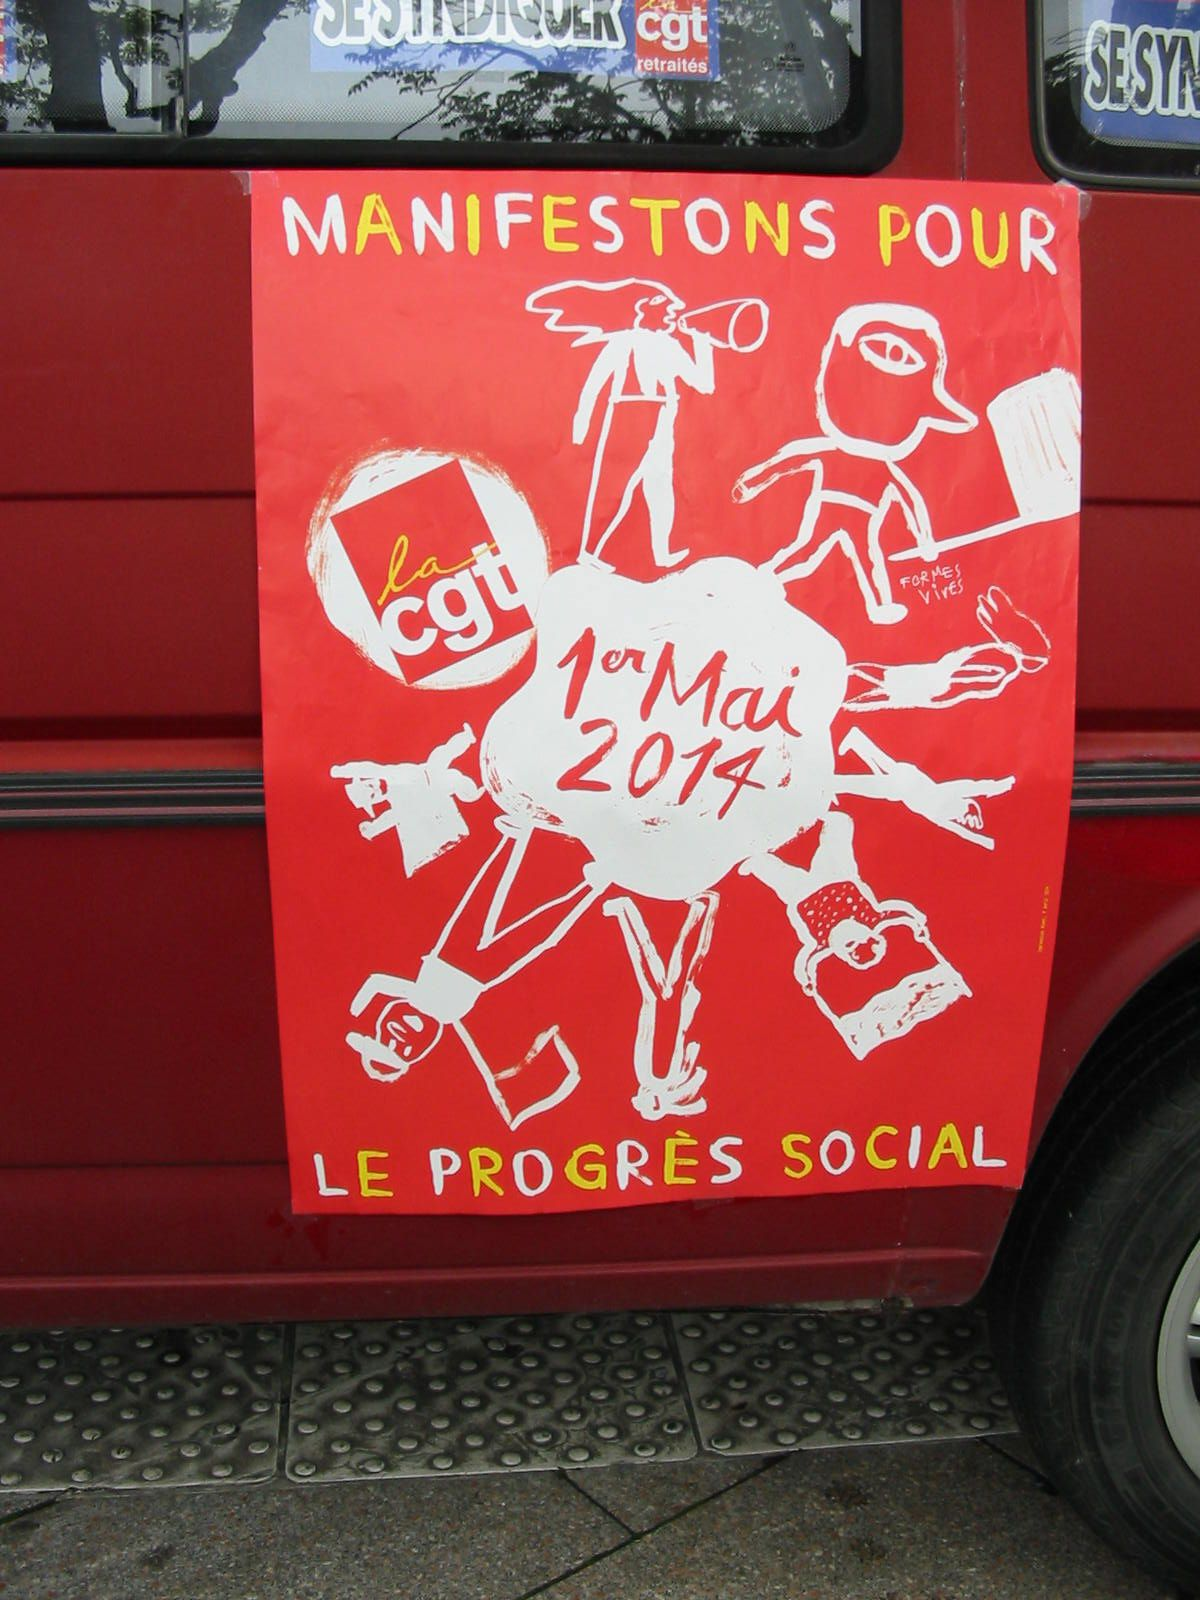 L'album Photo de l'Union Déparementale Cgt du Maine & Loire de la manifestation d'Angers.